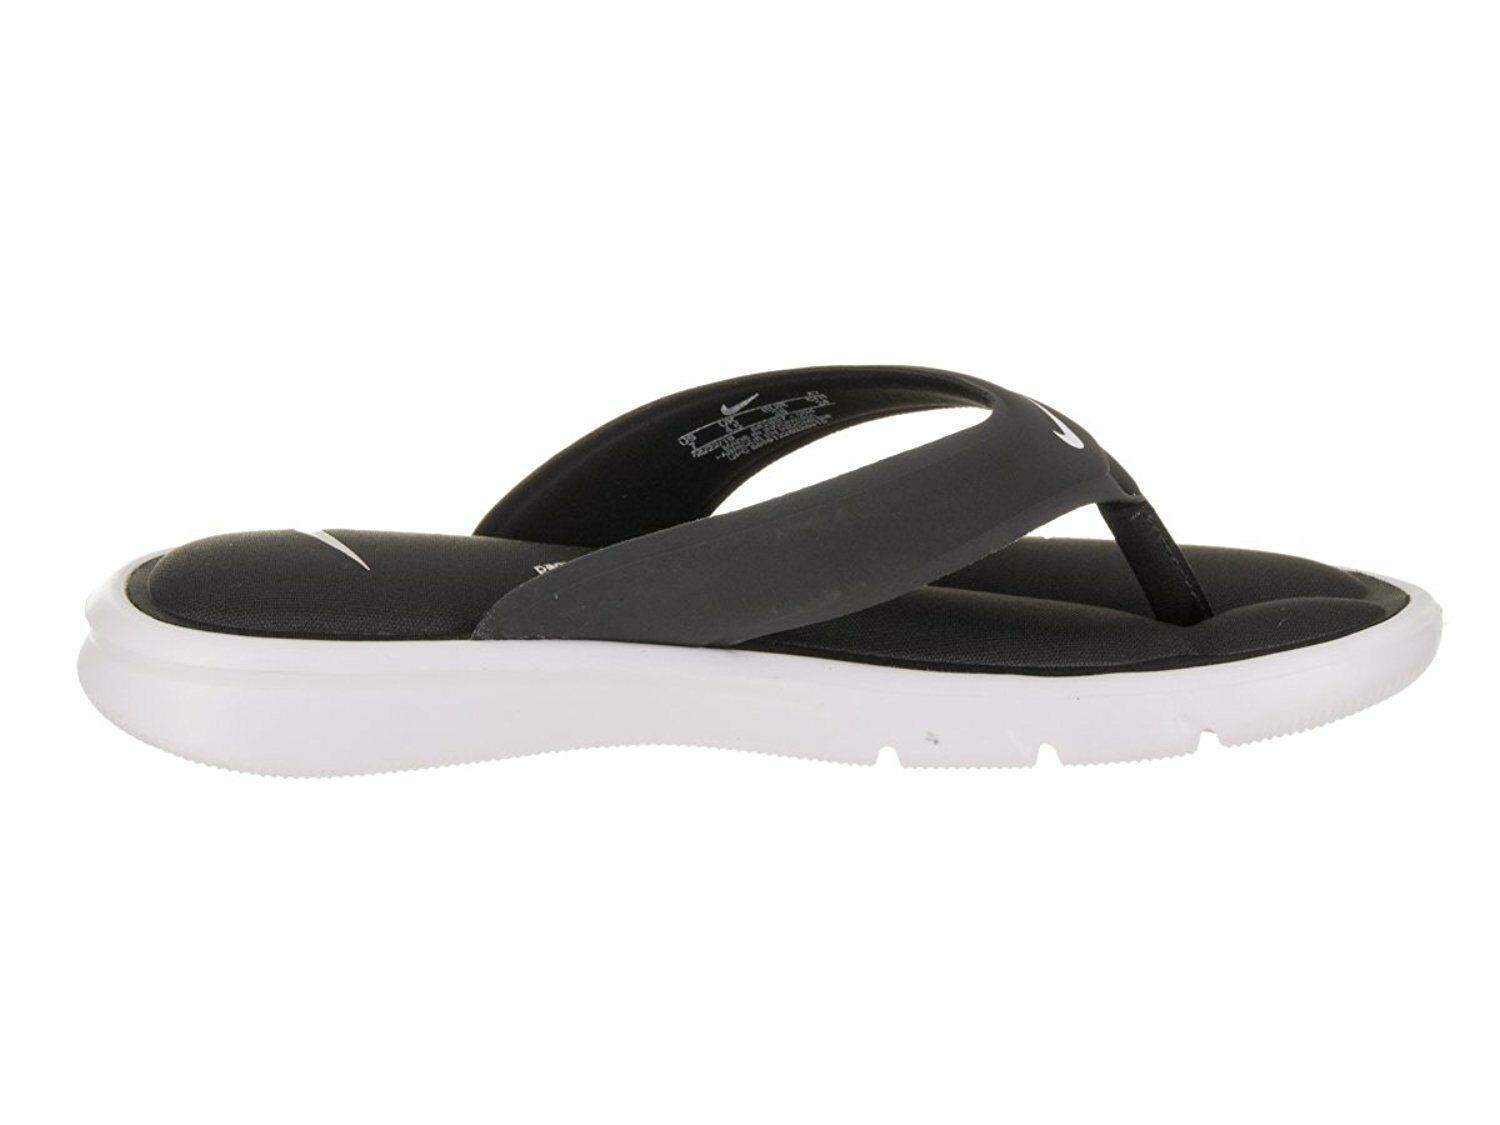 Women's Nike Ultra Comfort Thong Sandals, 882697 004 Size 6 Anthracite/White image 5